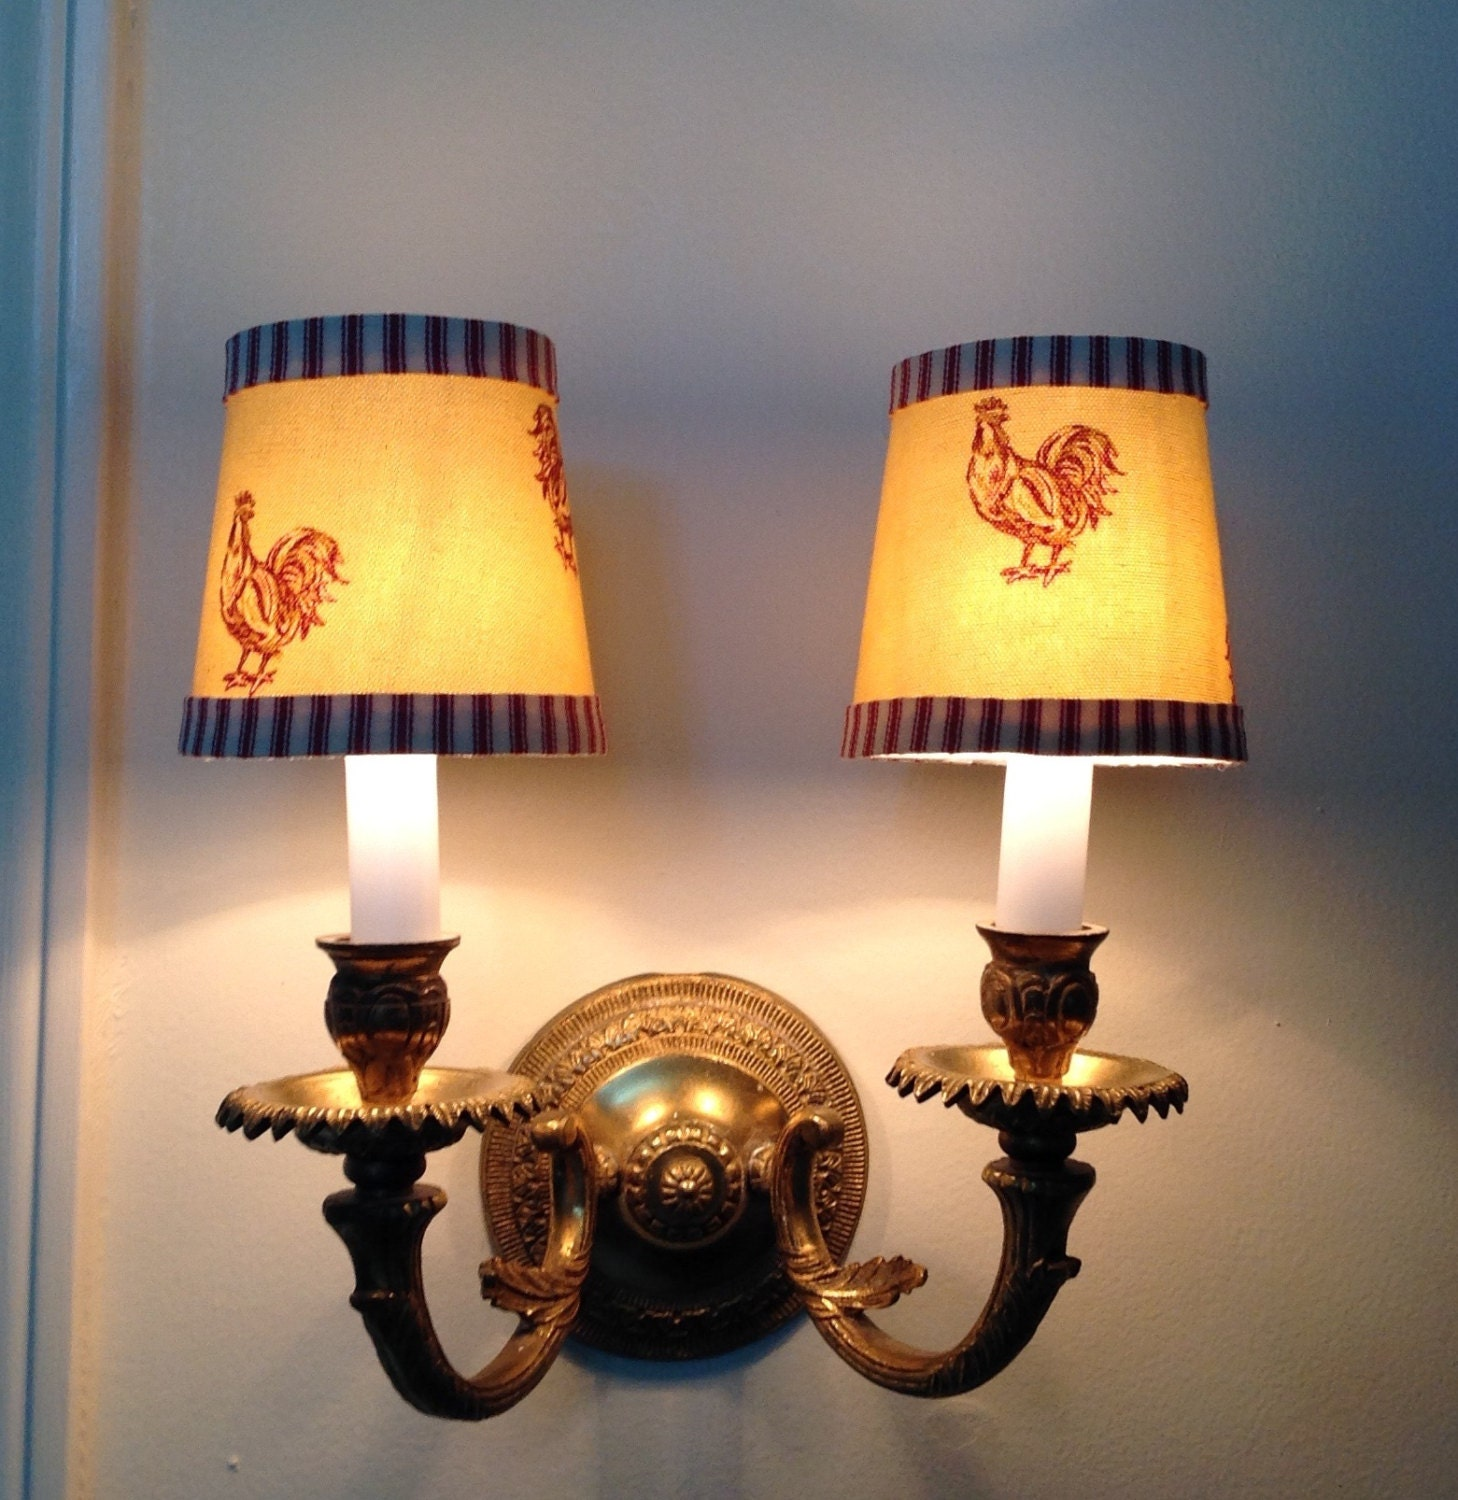 french country chandelier lamp shades. Black Bedroom Furniture Sets. Home Design Ideas